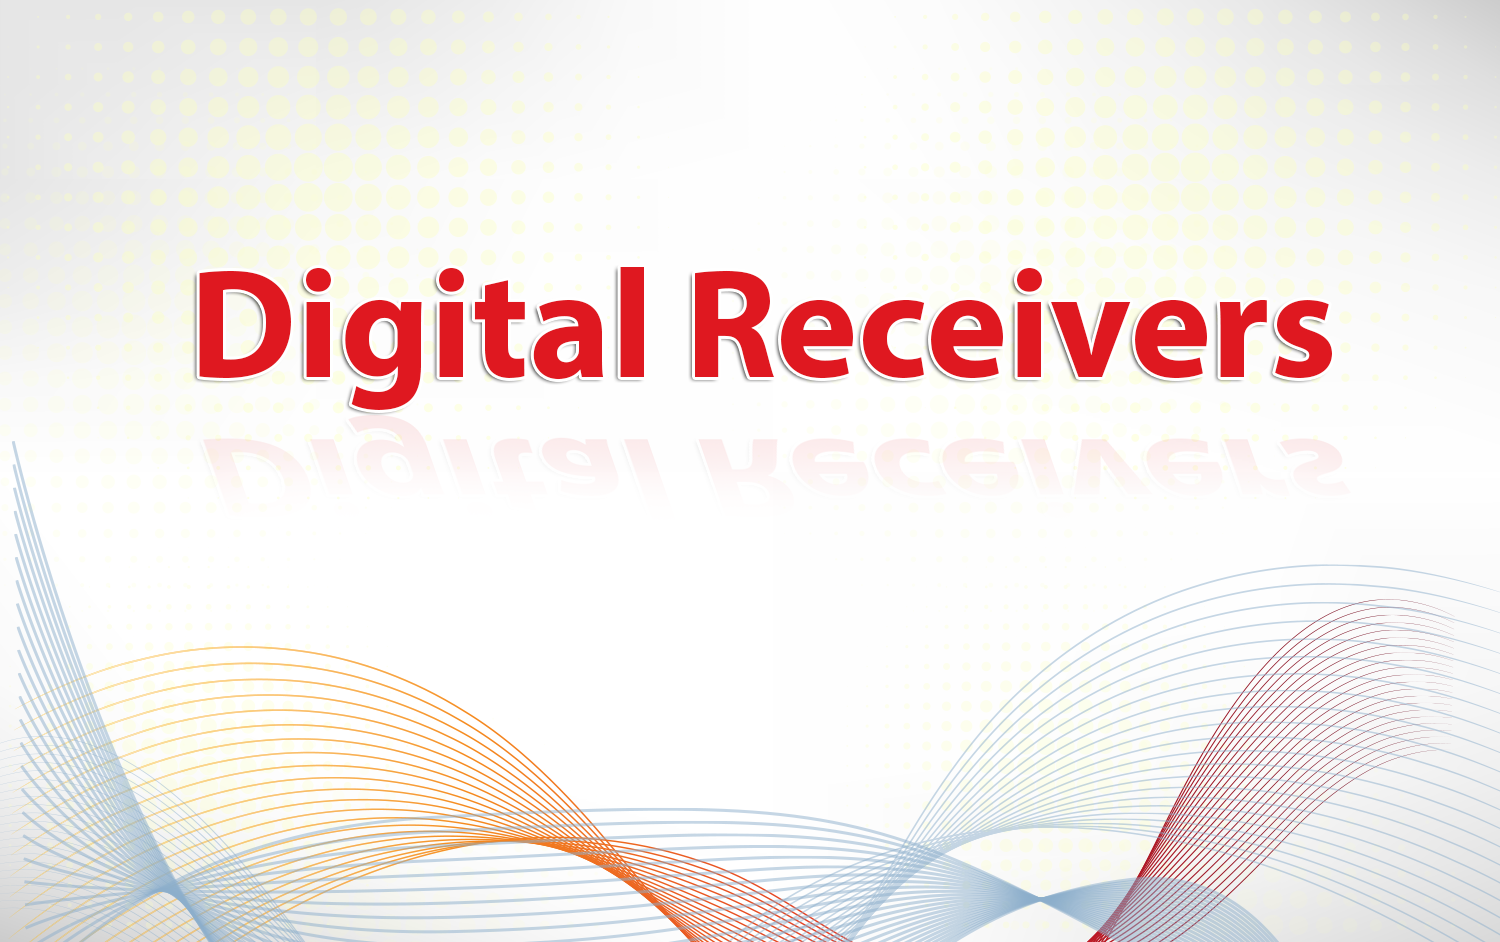 Digital-Receivers